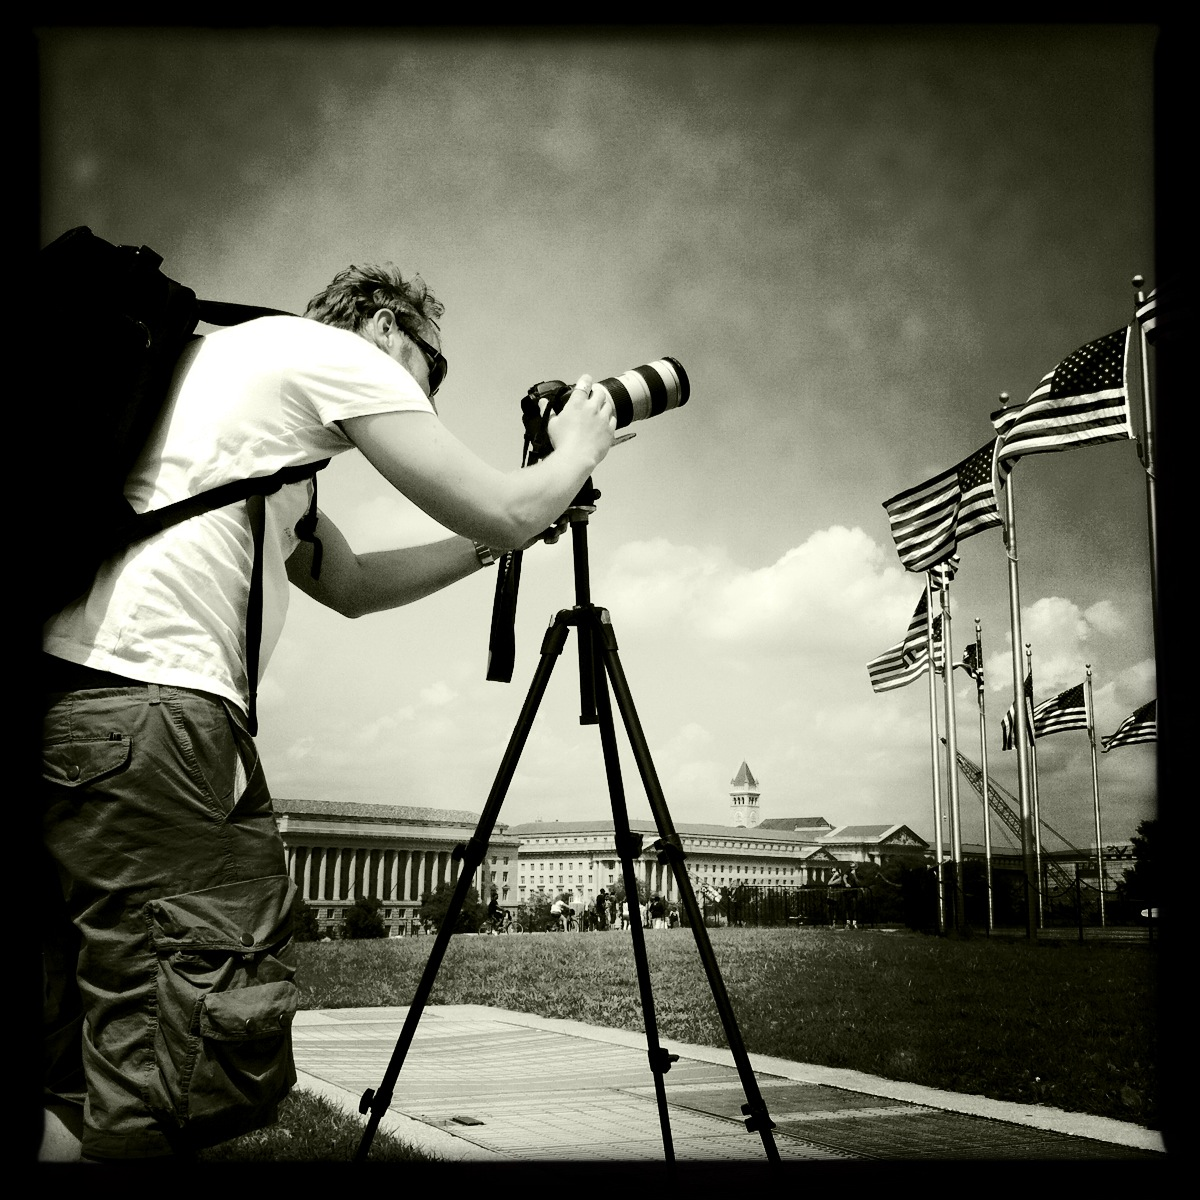 Jean Nicholas Guillo filming at the National Mall for Moneyocracy-project.com